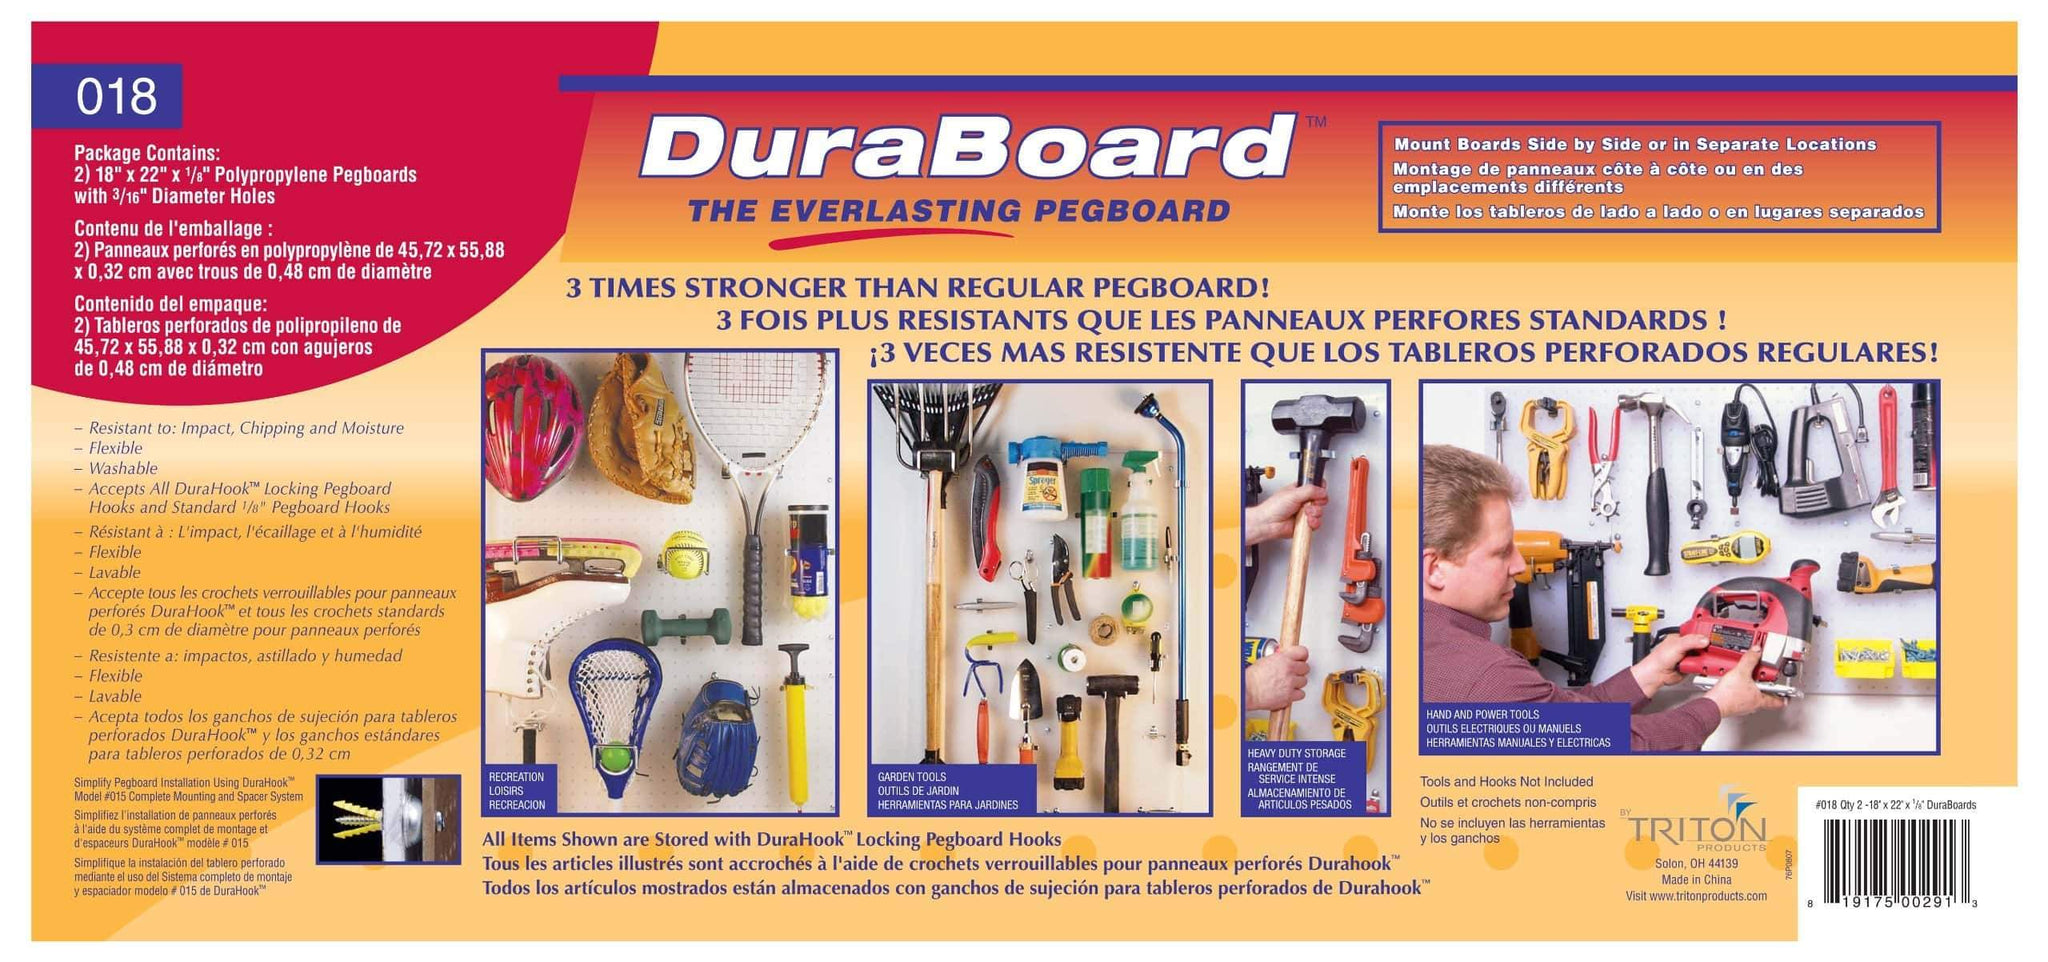 Storage triton products 018 kit duraboard 2 22 inch w x 18 inch h x 1 8 inch d white polypropylene pegboards with 22 pc durahook assortment and wall mounting hardware